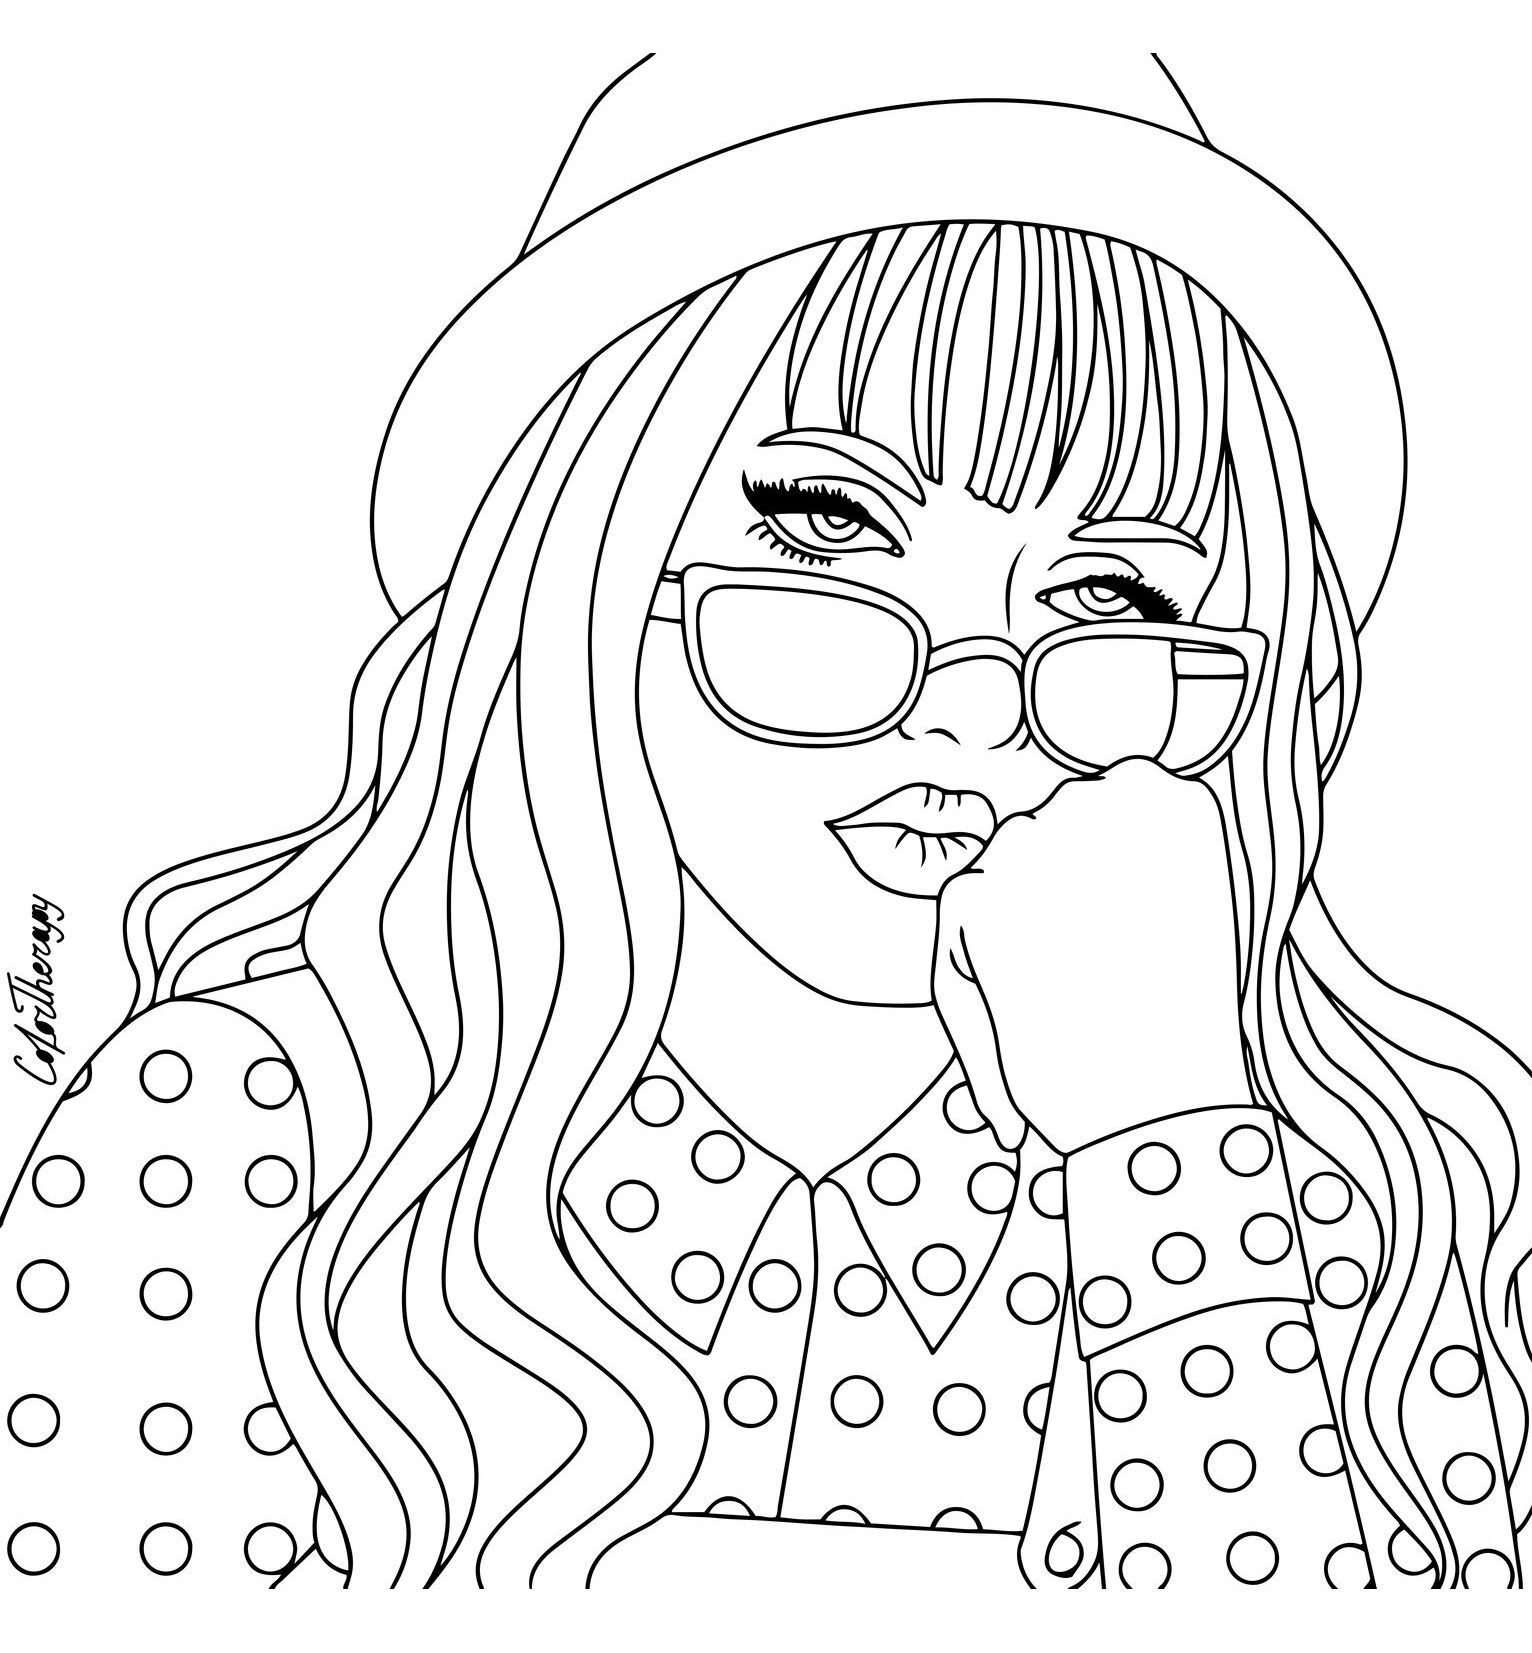 Coloring Page Fashion Gal Broderie Dessin Coloriage People Coloring Pages Cute Coloring Pages Turtle Coloring Pages